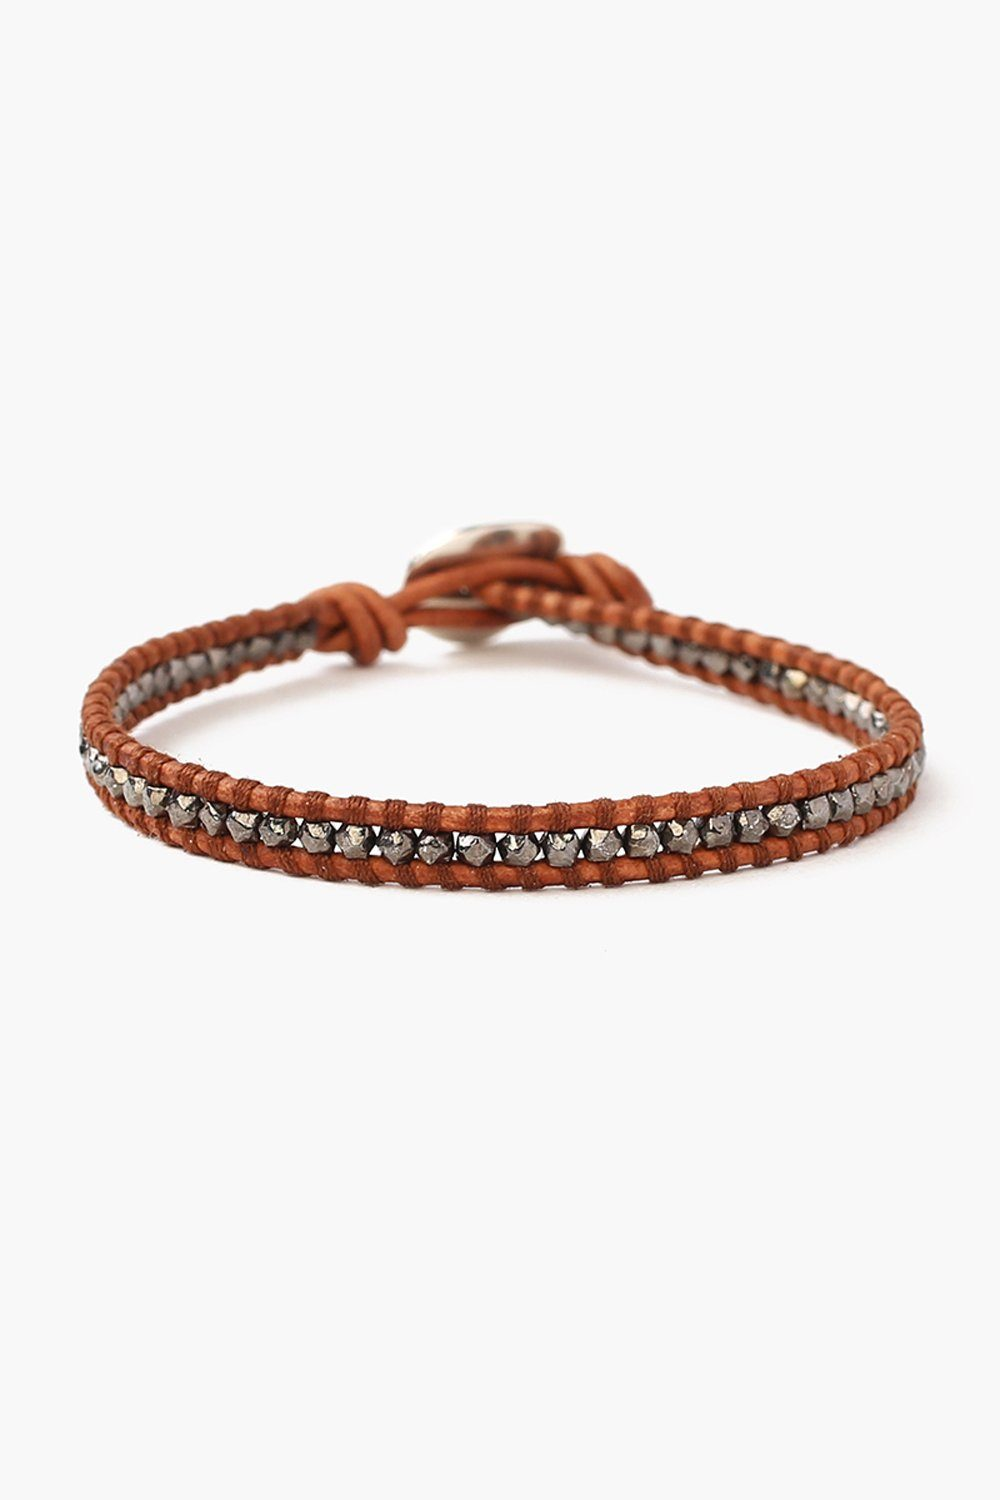 Men's Gunmetal Single Wrap Bracelet on Natural Brown Leather